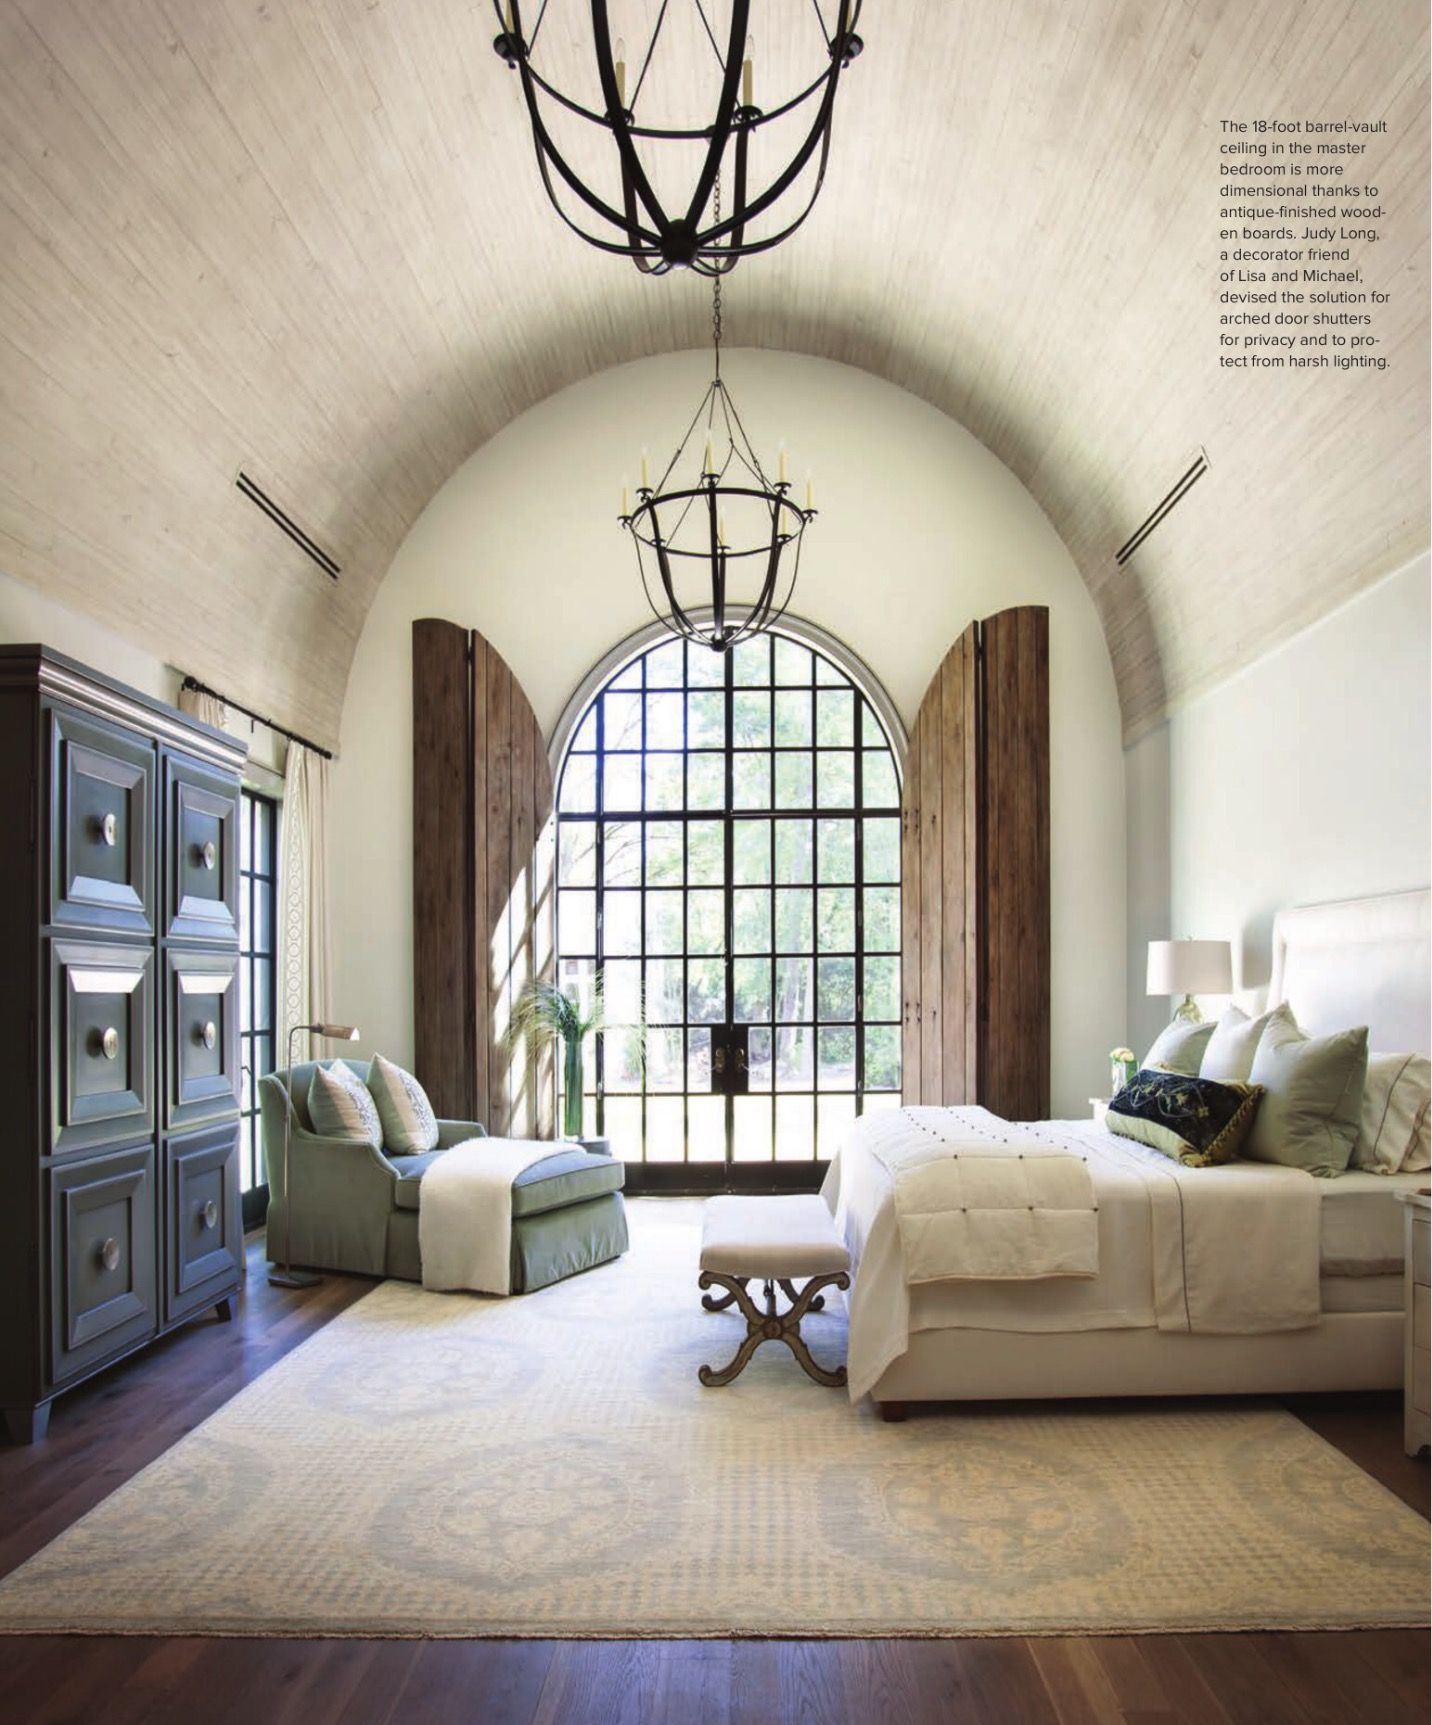 Pictures of barrel ceilings